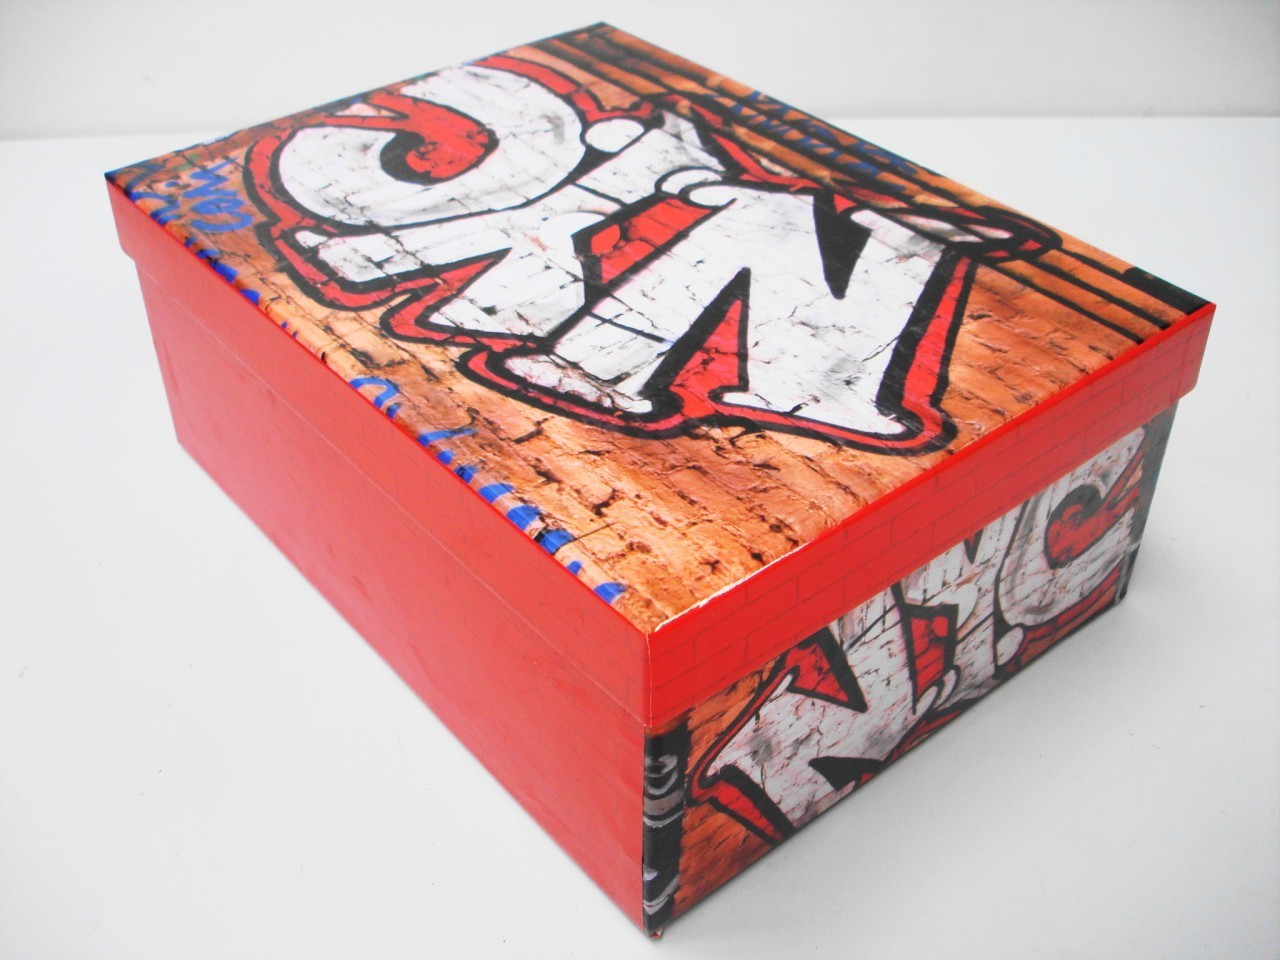 NYC-OR-GUITAR-CHRISTMAS-BIRTHDAY-CARDBOARD-GIFT-BOX-CRAFT-A4-PAPER-STORAGE-BOXES